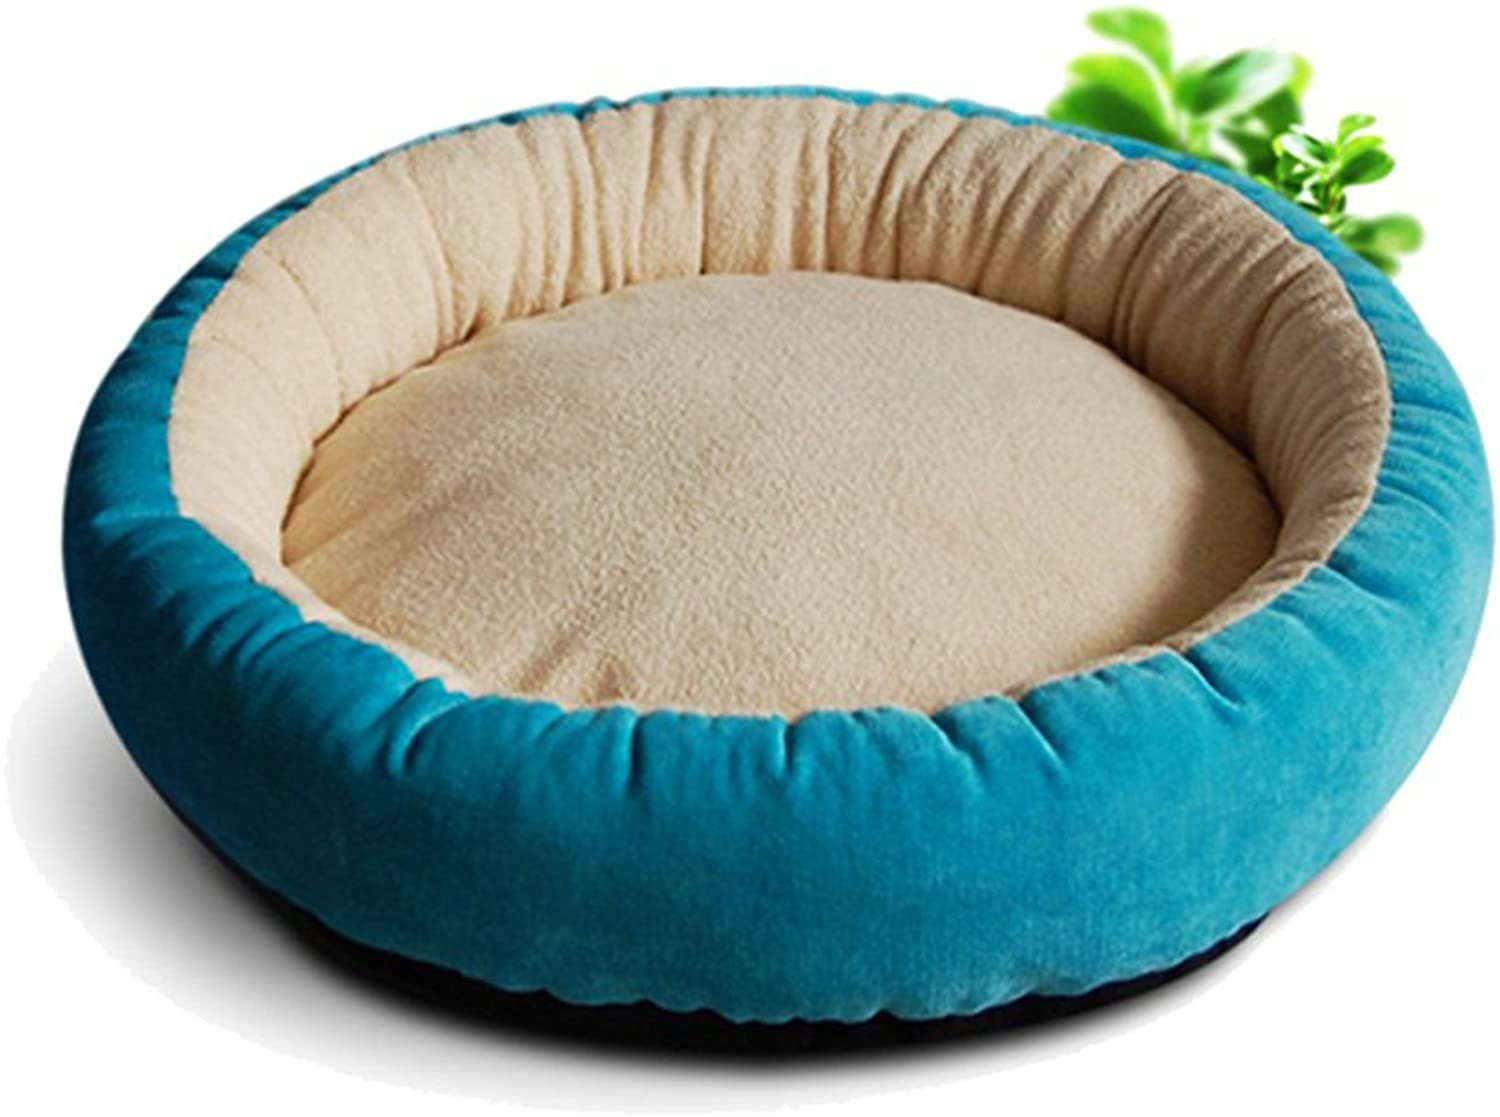 Kennel Cat Bed Pet Nest Red, Round, Size M L, Three colors to Choose from (Size   2-L45cm)